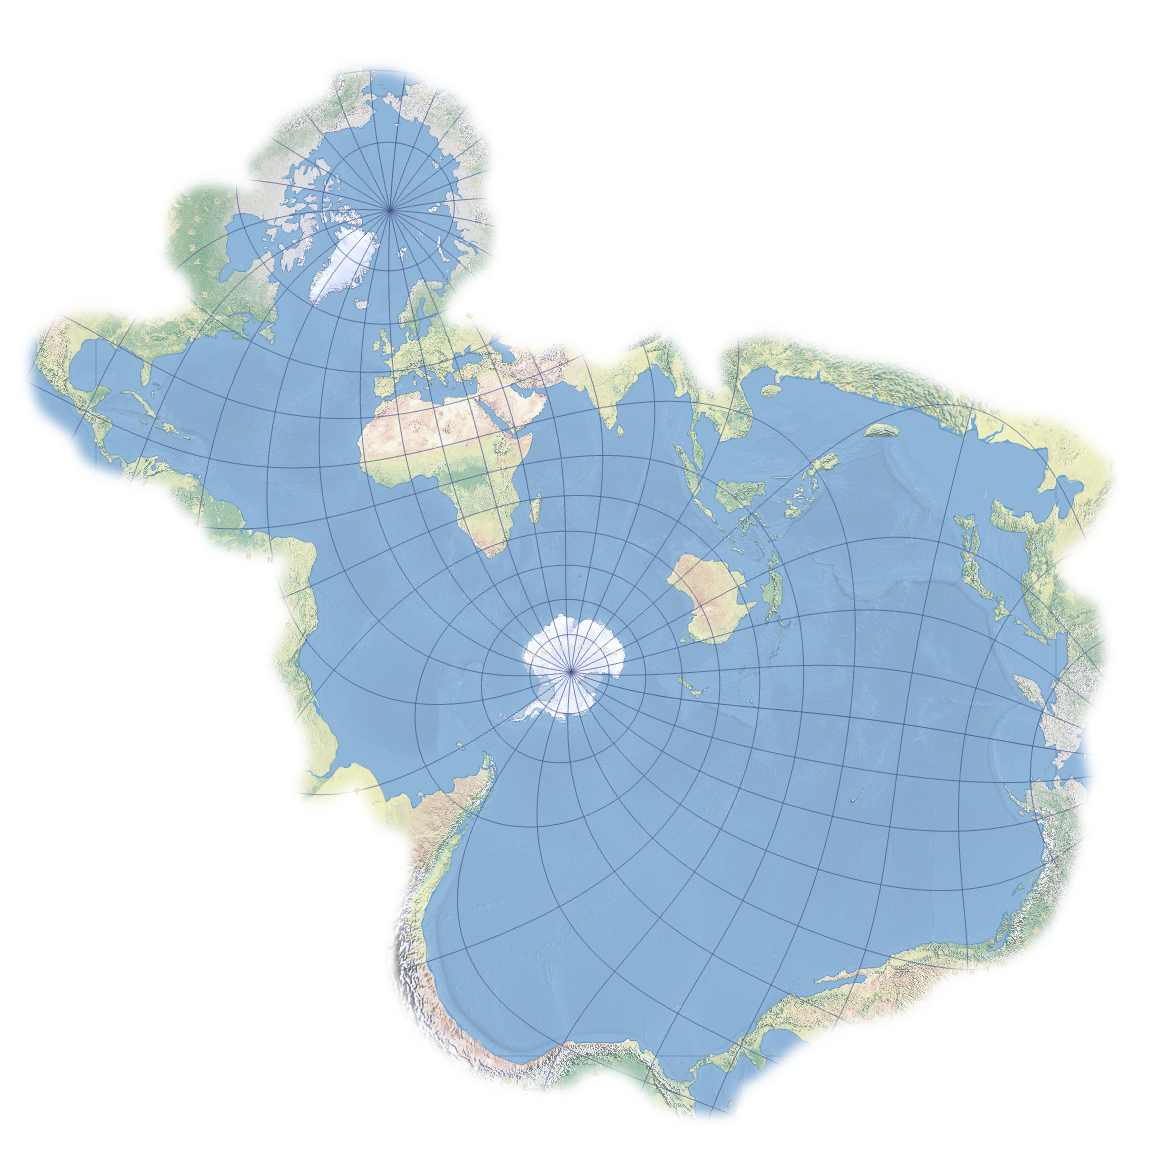 World Map Of Oceans The Spilhaus World Ocean Map in a Square